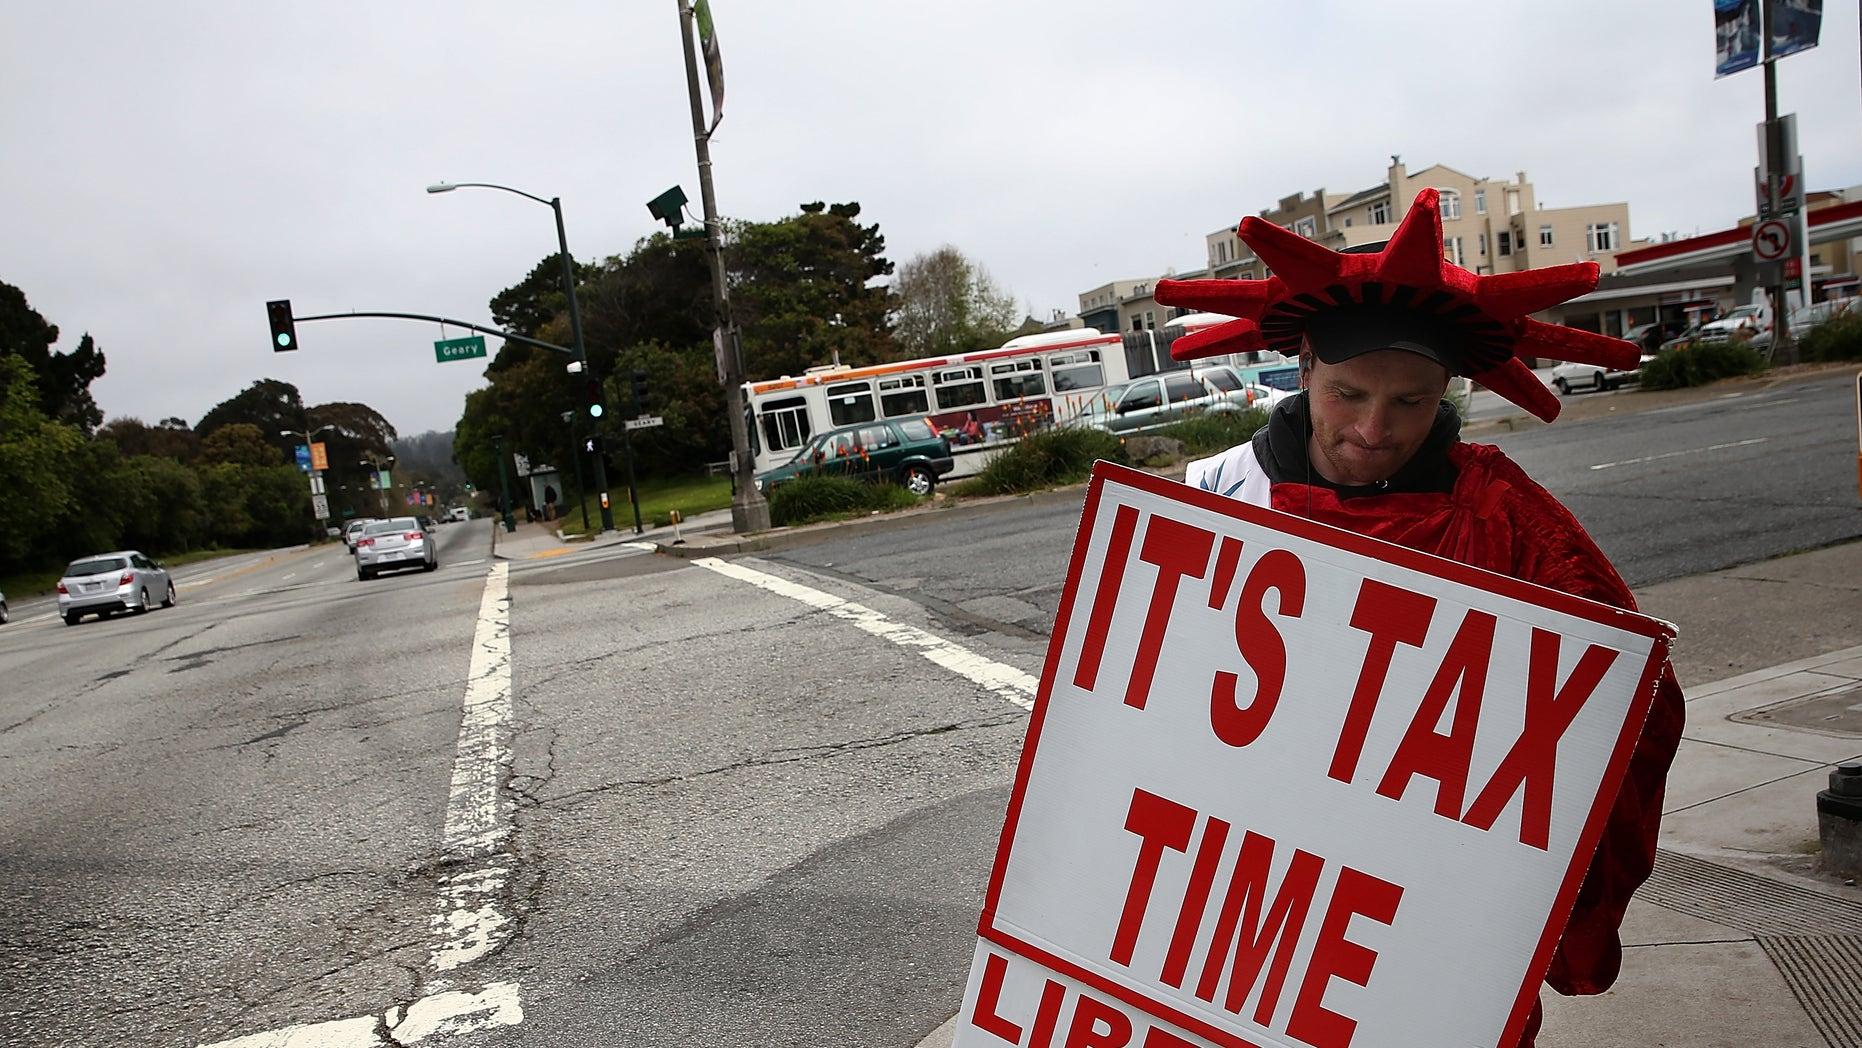 SAN FRANCISCO, CA - APRIL 14:  Aaron Lee holds a sign advertising income tax services for Liberty Tax Service on April 14, 2014 in San Francisco, California.  Tax preparers are helping last minute tax filers ahead of the April 15th deadline to file state and federal income taxes. The Internal Revenue Service is expecting an estimated 35 million returns in the week leading up to the deadline.  (Photo by Justin Sullivan/Getty Images)